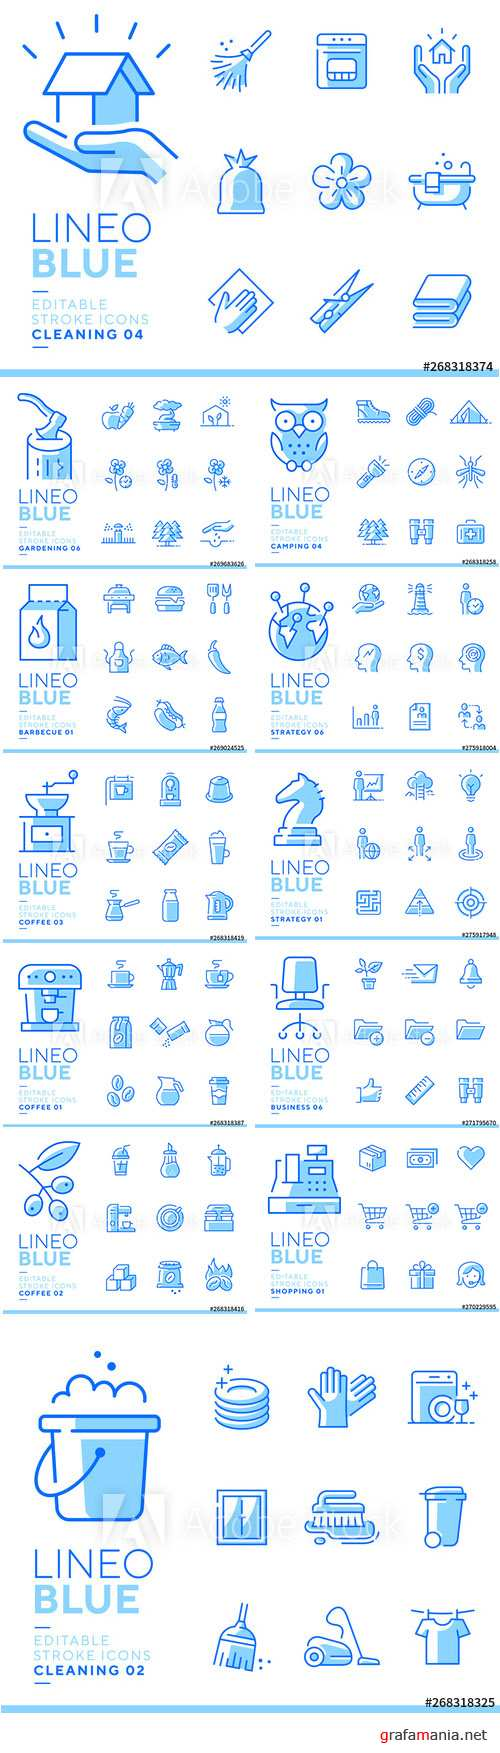 Lineo Blue - Line Icons Vector Pack Vol 3